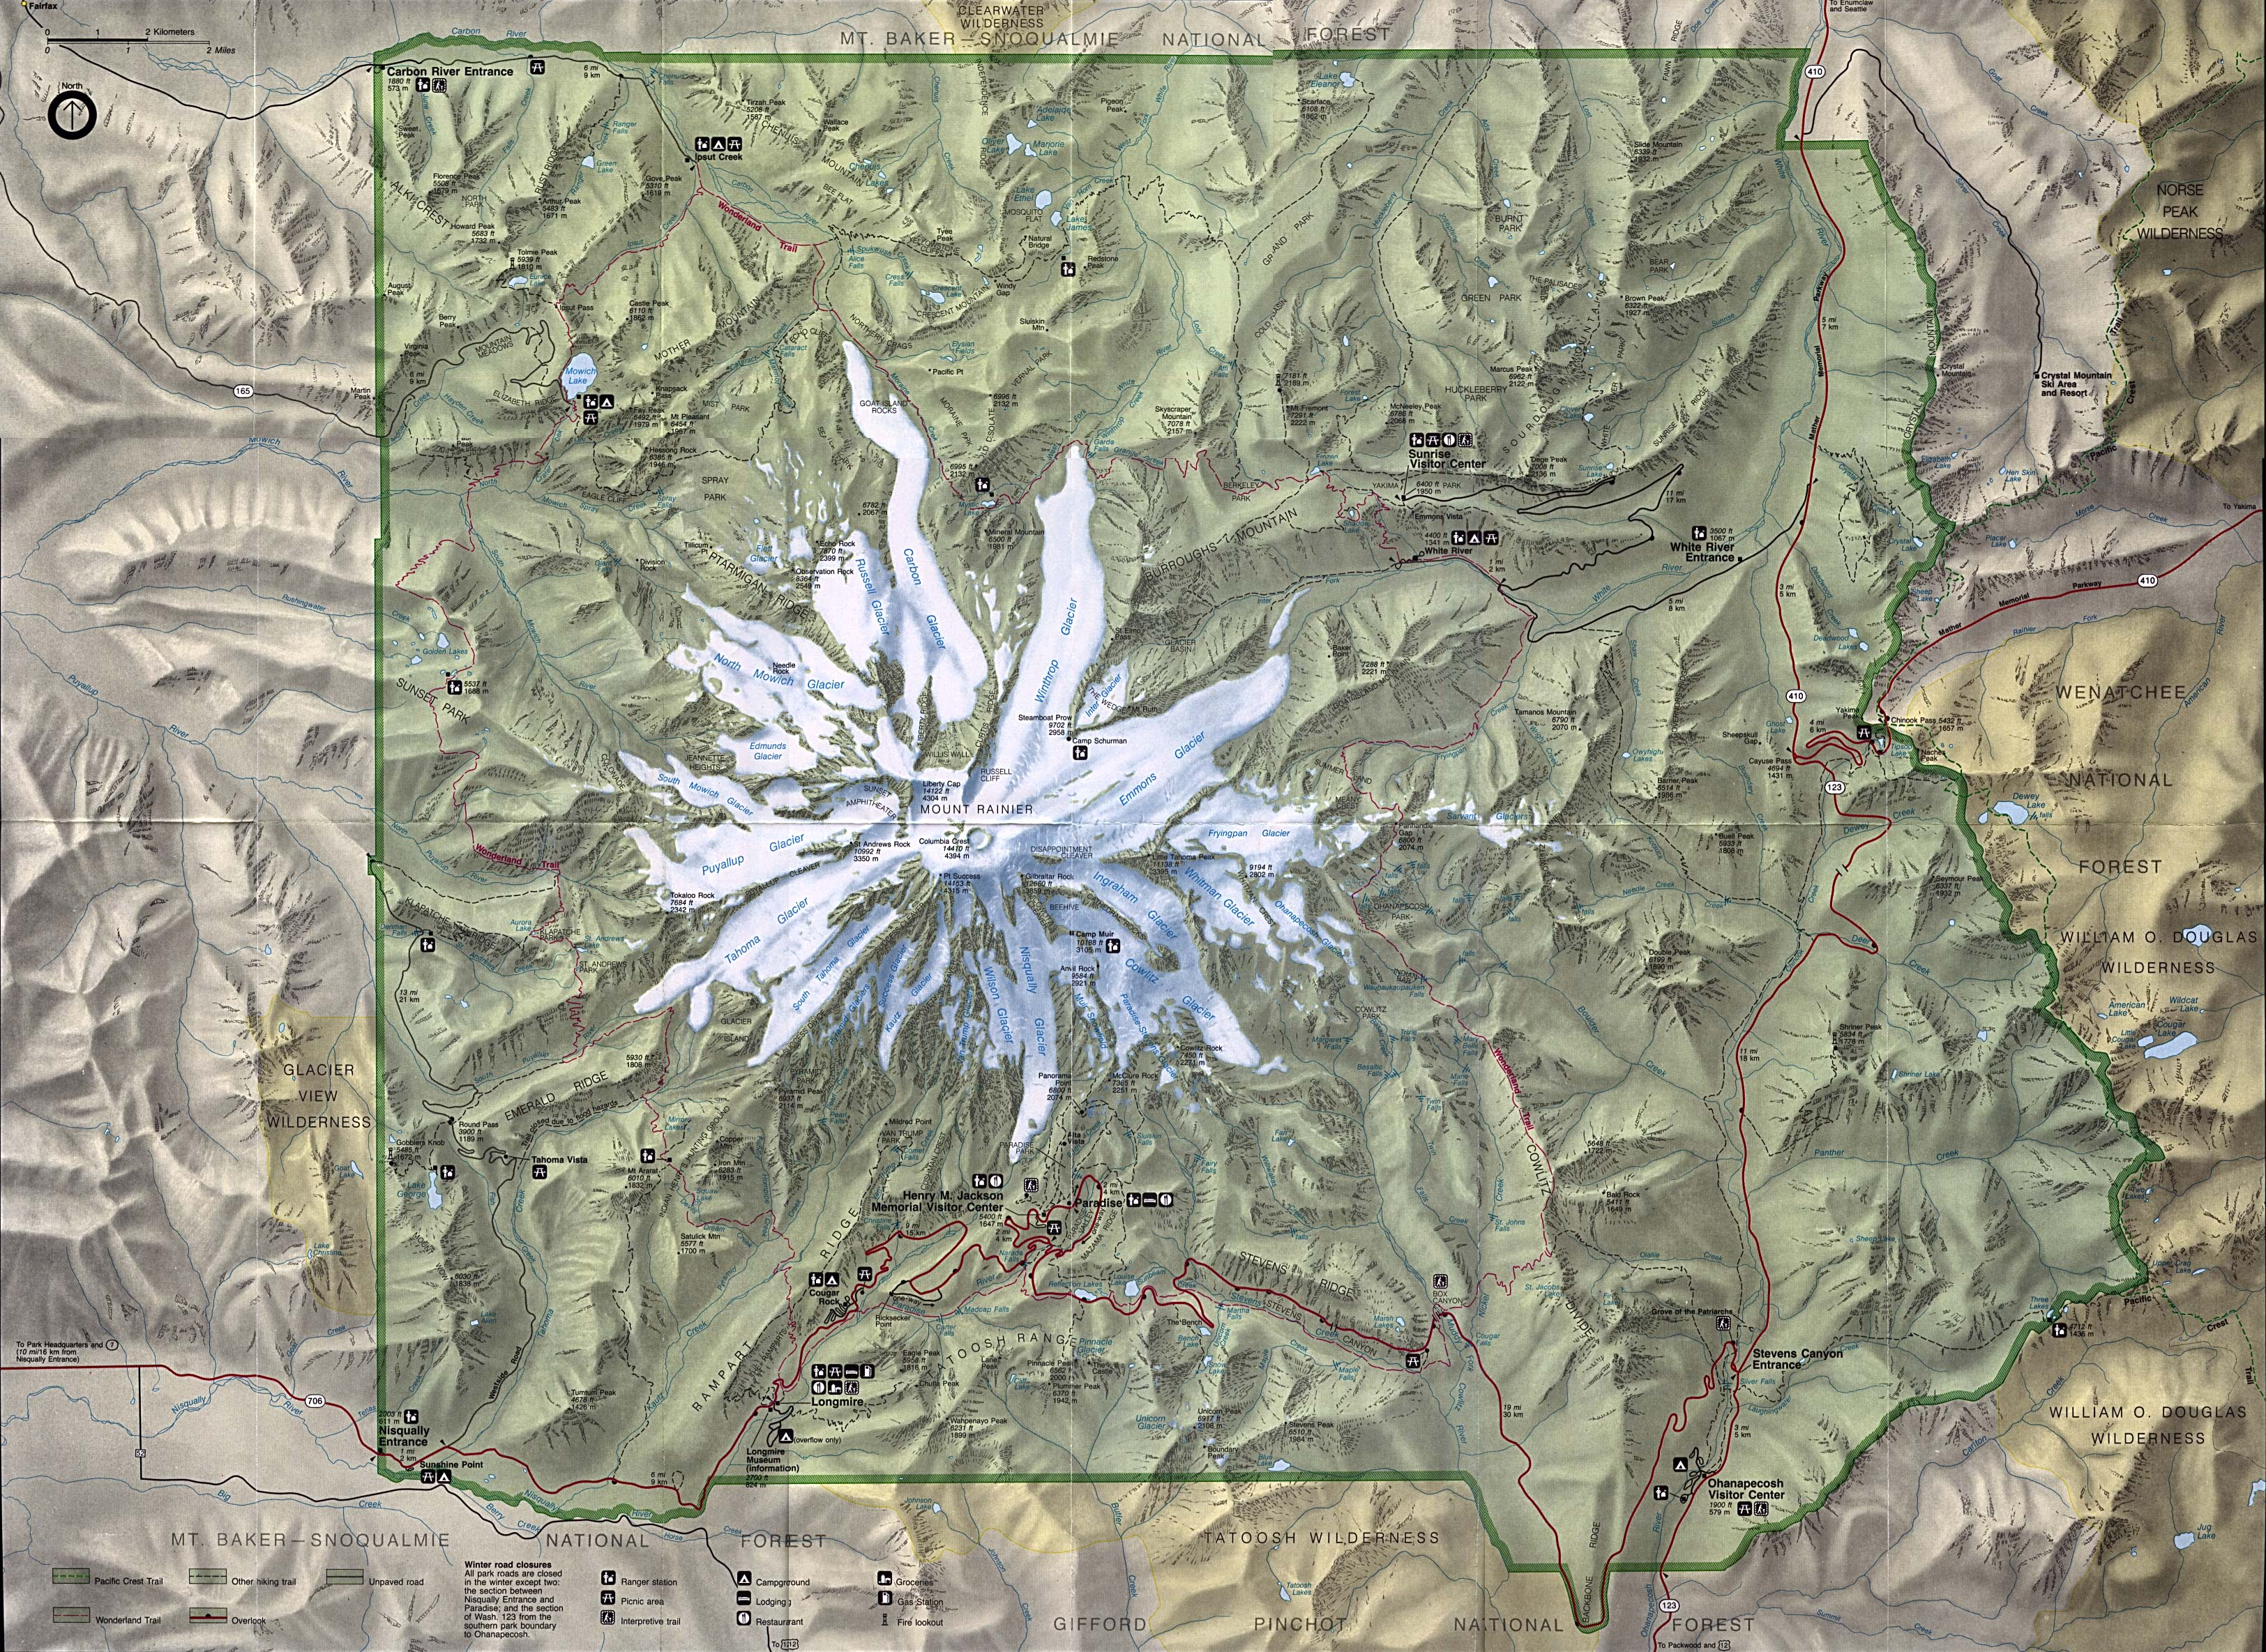 Maps of United States National Parks, Monuments and Historic Sites Mount Rainier National Park [Washington] (Park Map) (1.8MB)